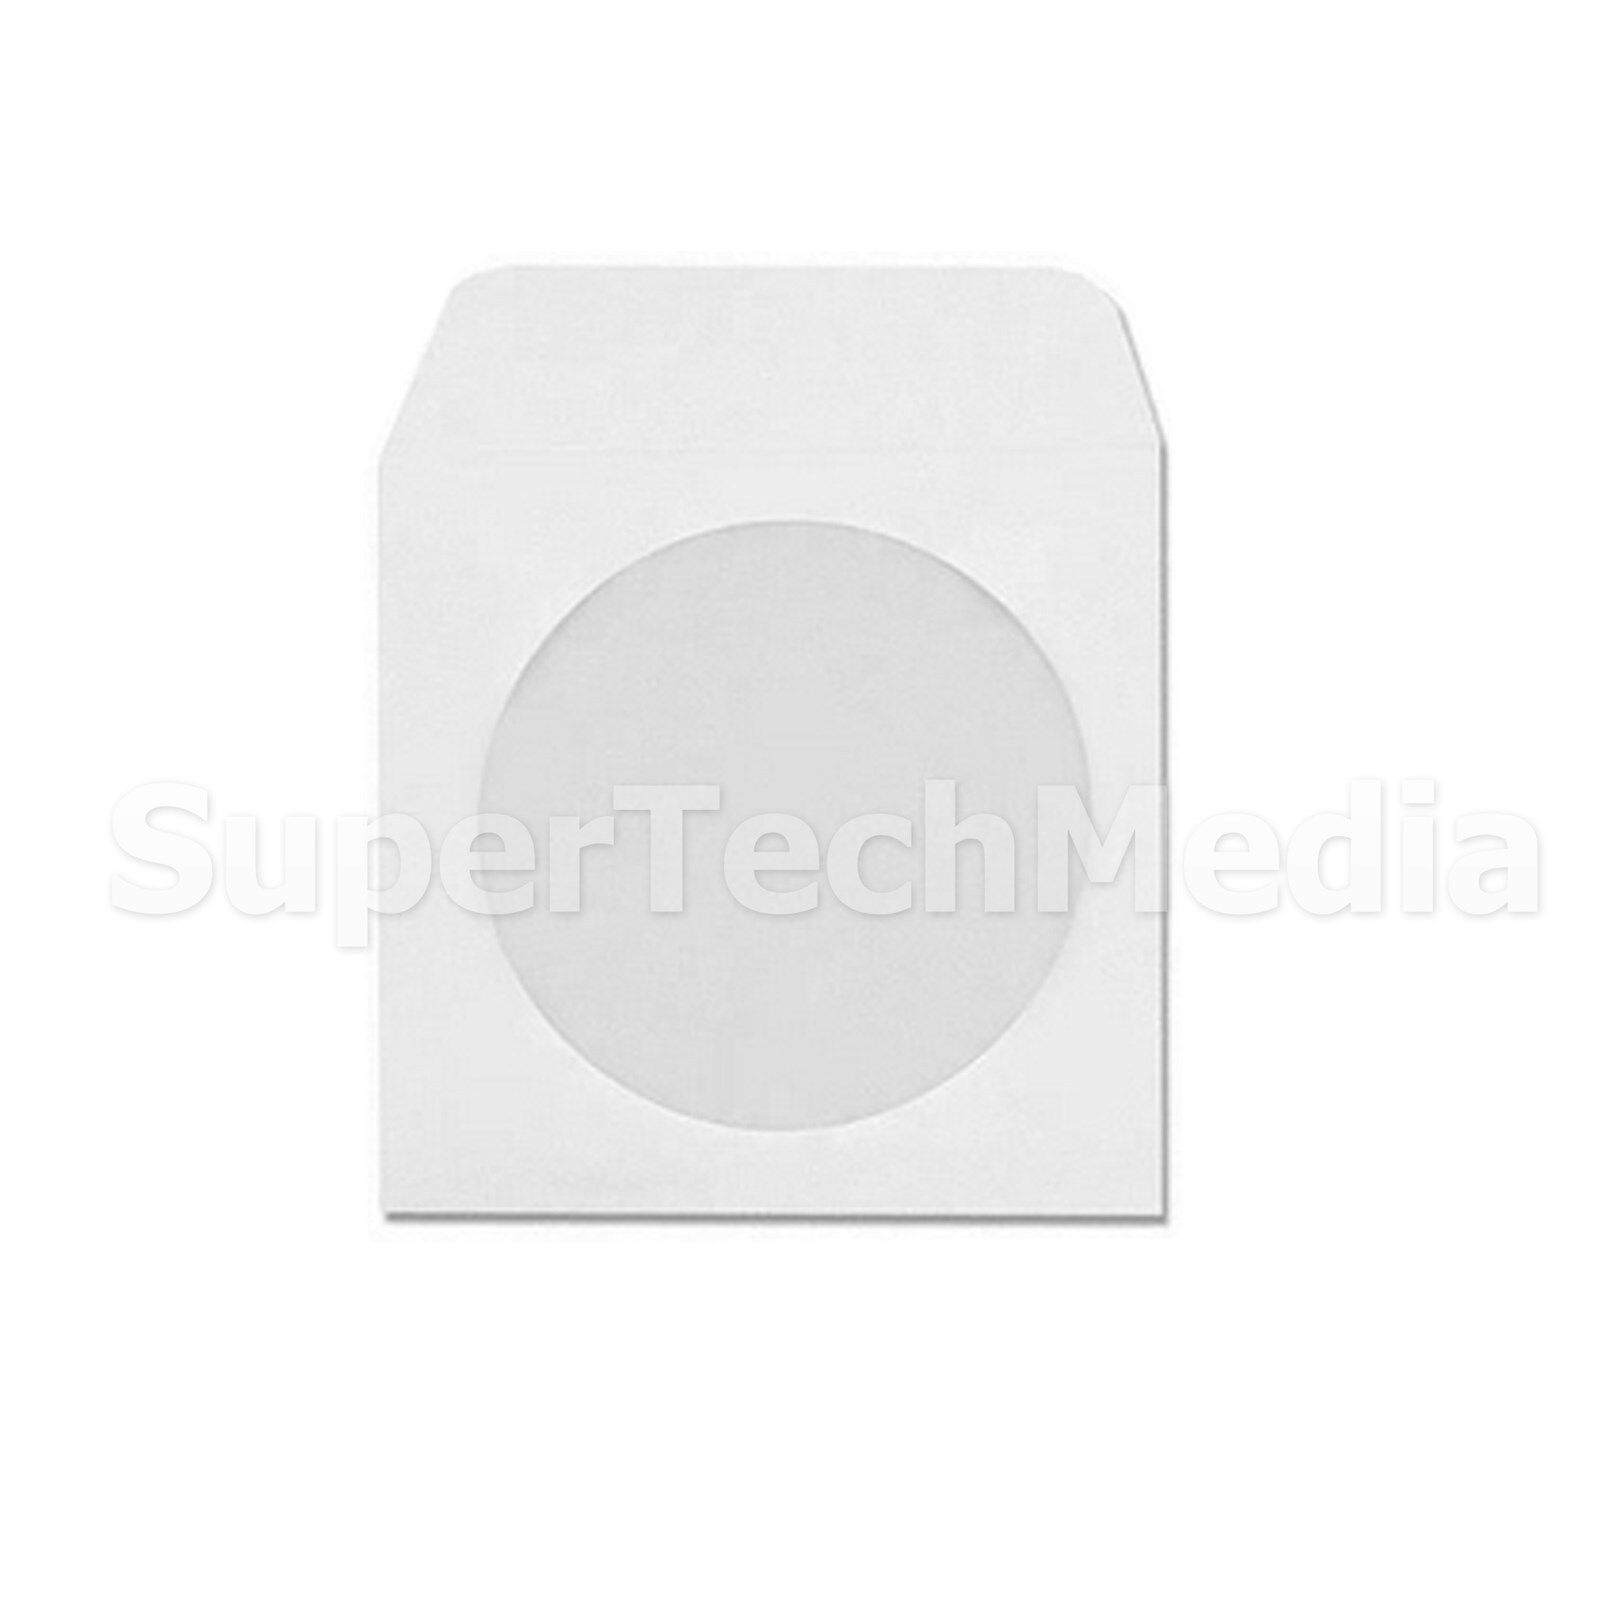 2000 white paper cd dvd r disc sleeve envelope with window for 100 paper cd sleeves with window flap